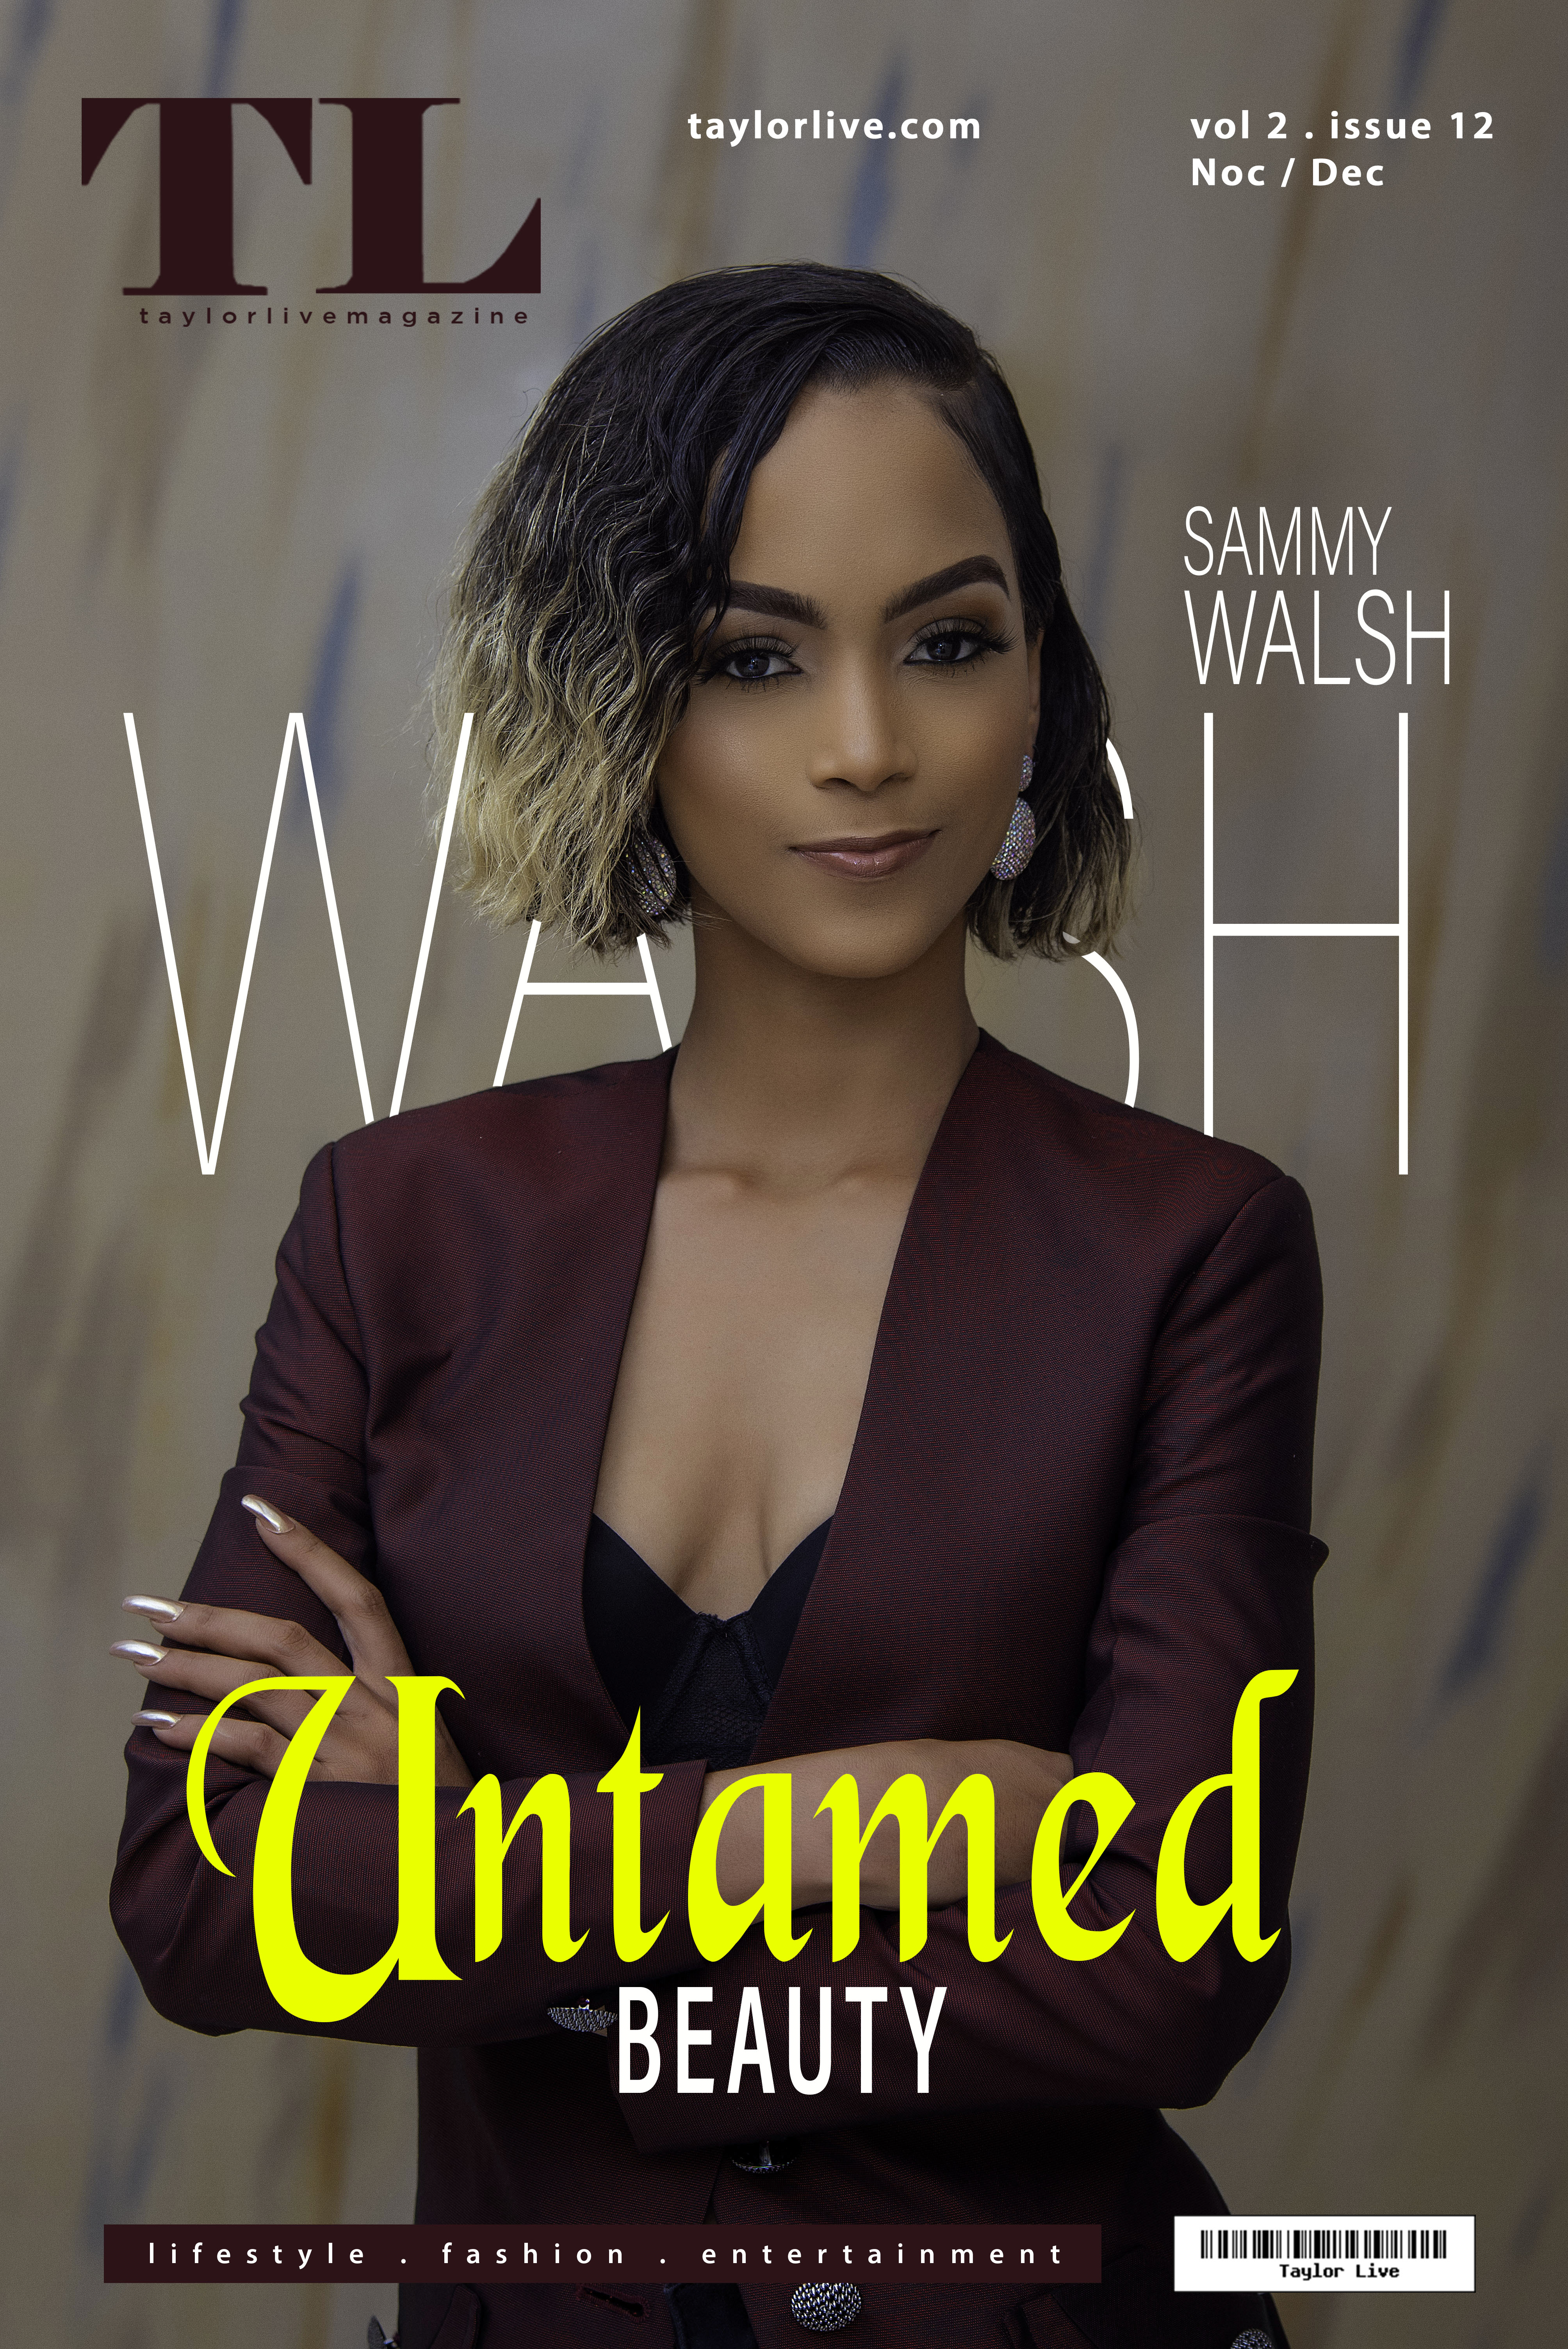 """""""UNTAMED BEAUTY"""" Sammy Walsh Popularly known as Sammy Walsh Covers Taylor Live Magazine's Latest Issue (TL Magazine)."""